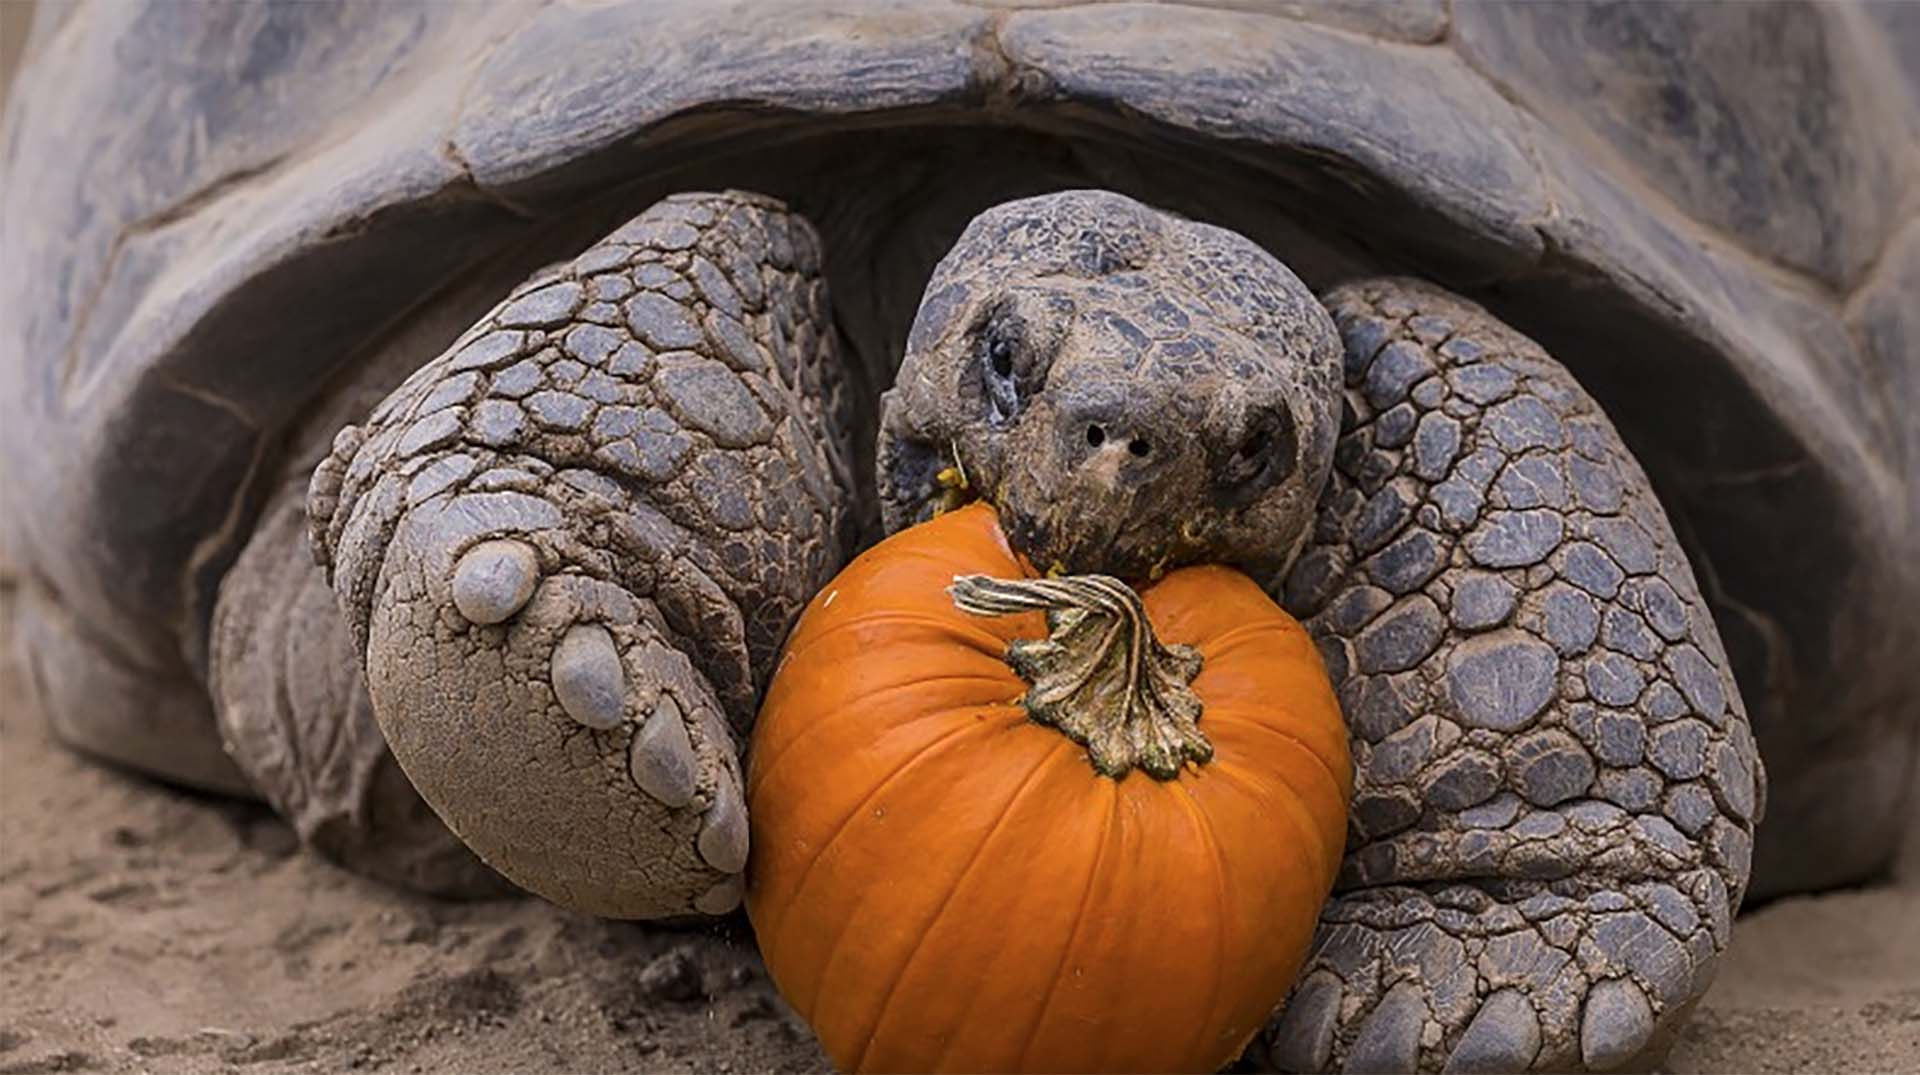 A giant, Galápagos tortoise taking a bite out of a pumpkin.